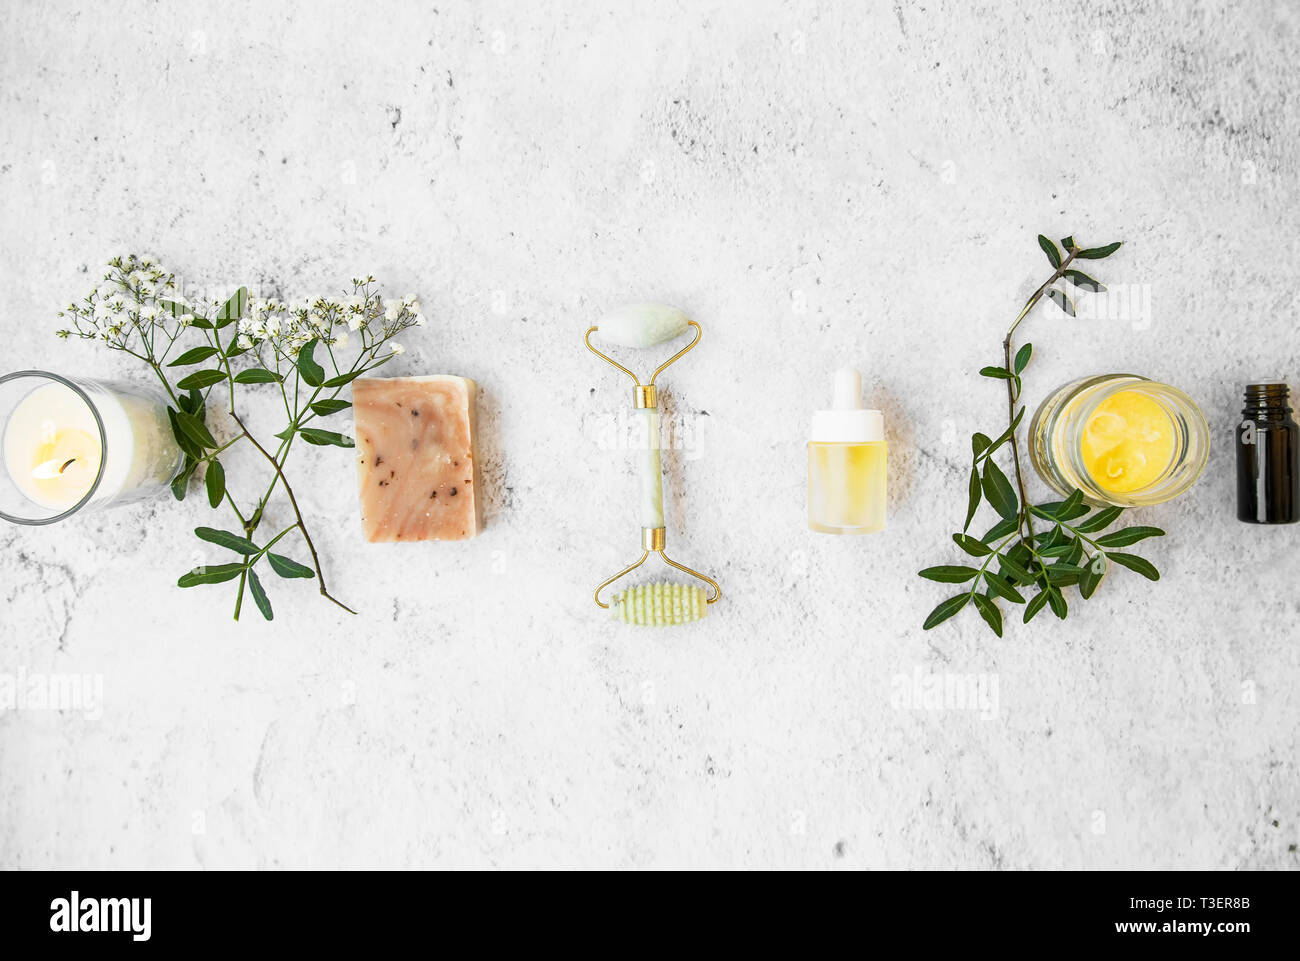 Natural Organic Skincare Products On Concrete Background Top View Green Natural Skincare And Beauty With Flowers Natural Soap Jade Roller Essenti Stock Photo Alamy